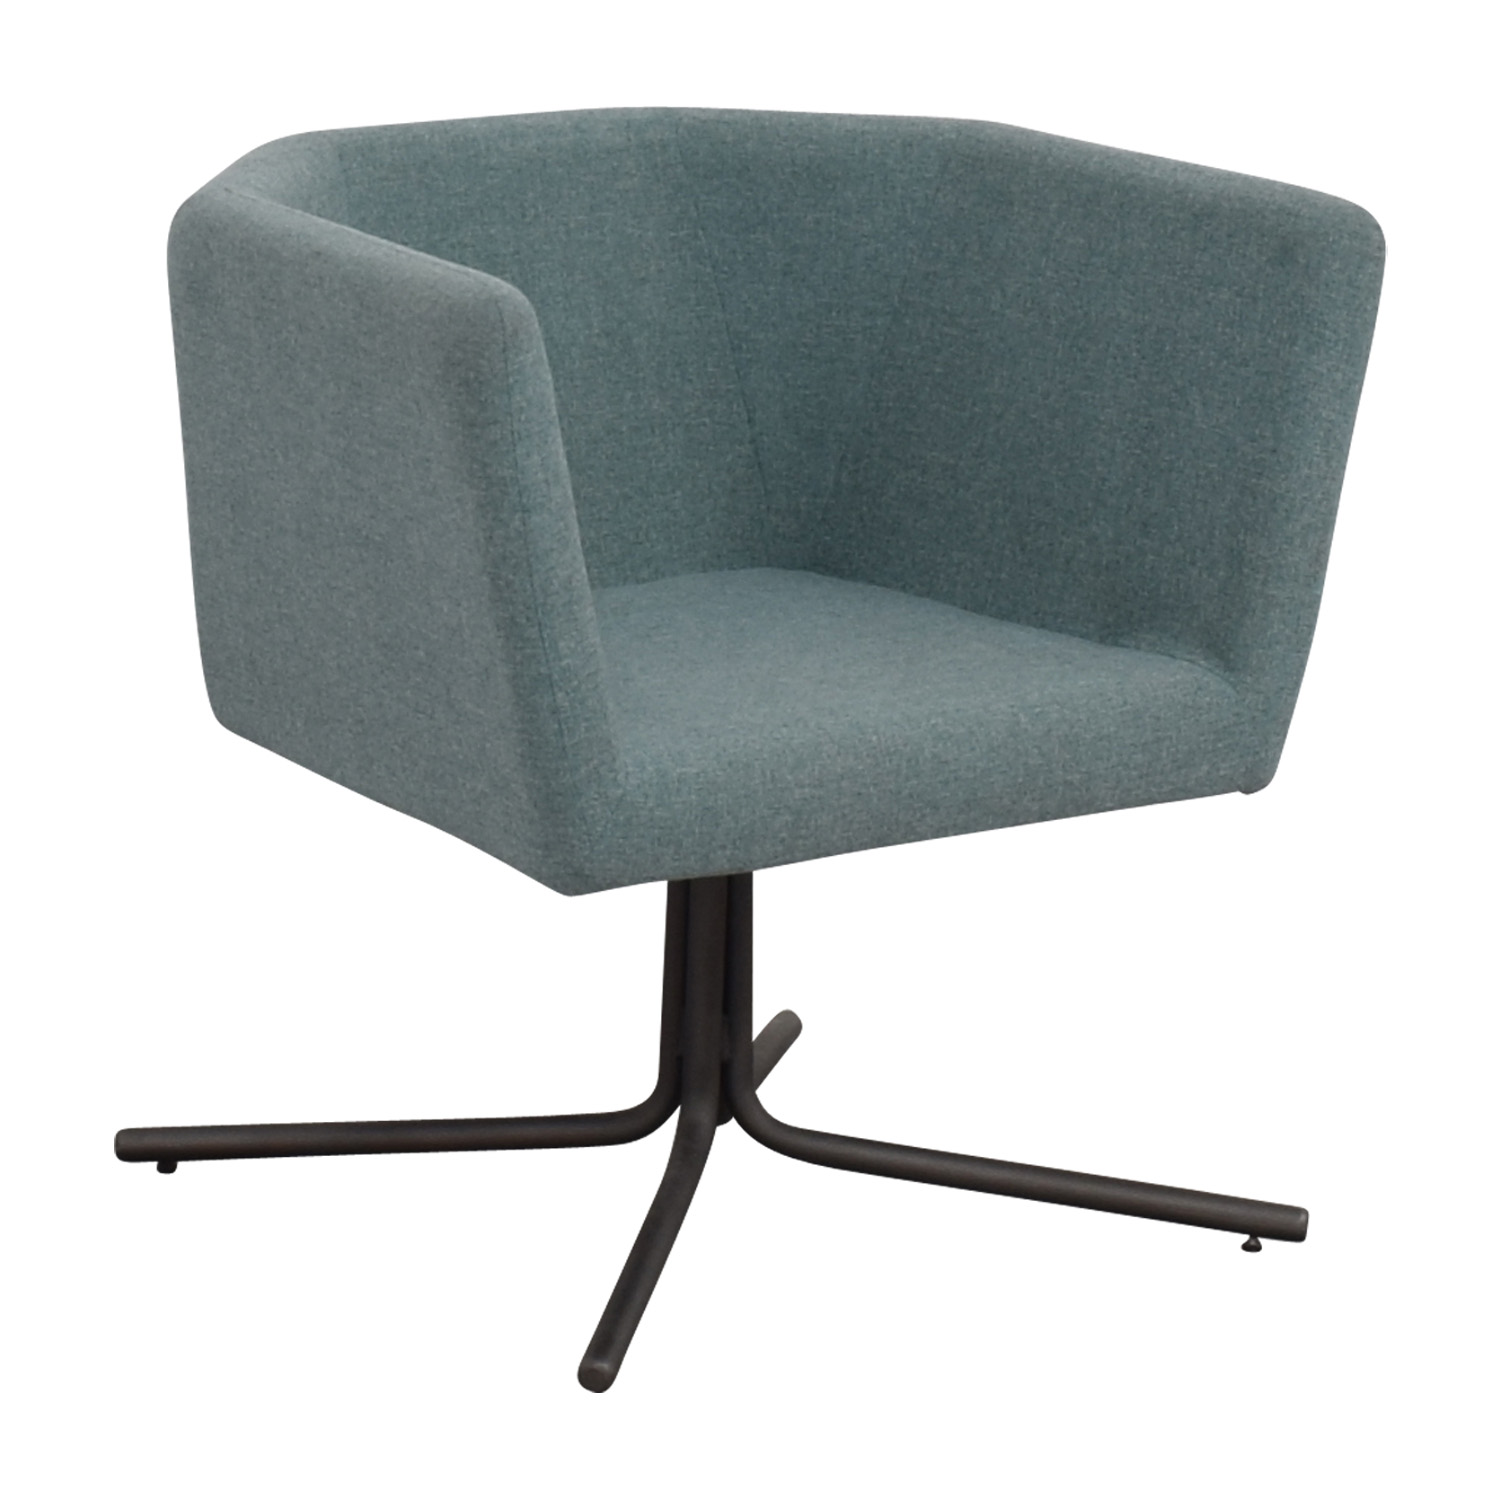 CB2 CB2 Facetta Cyan Chair price